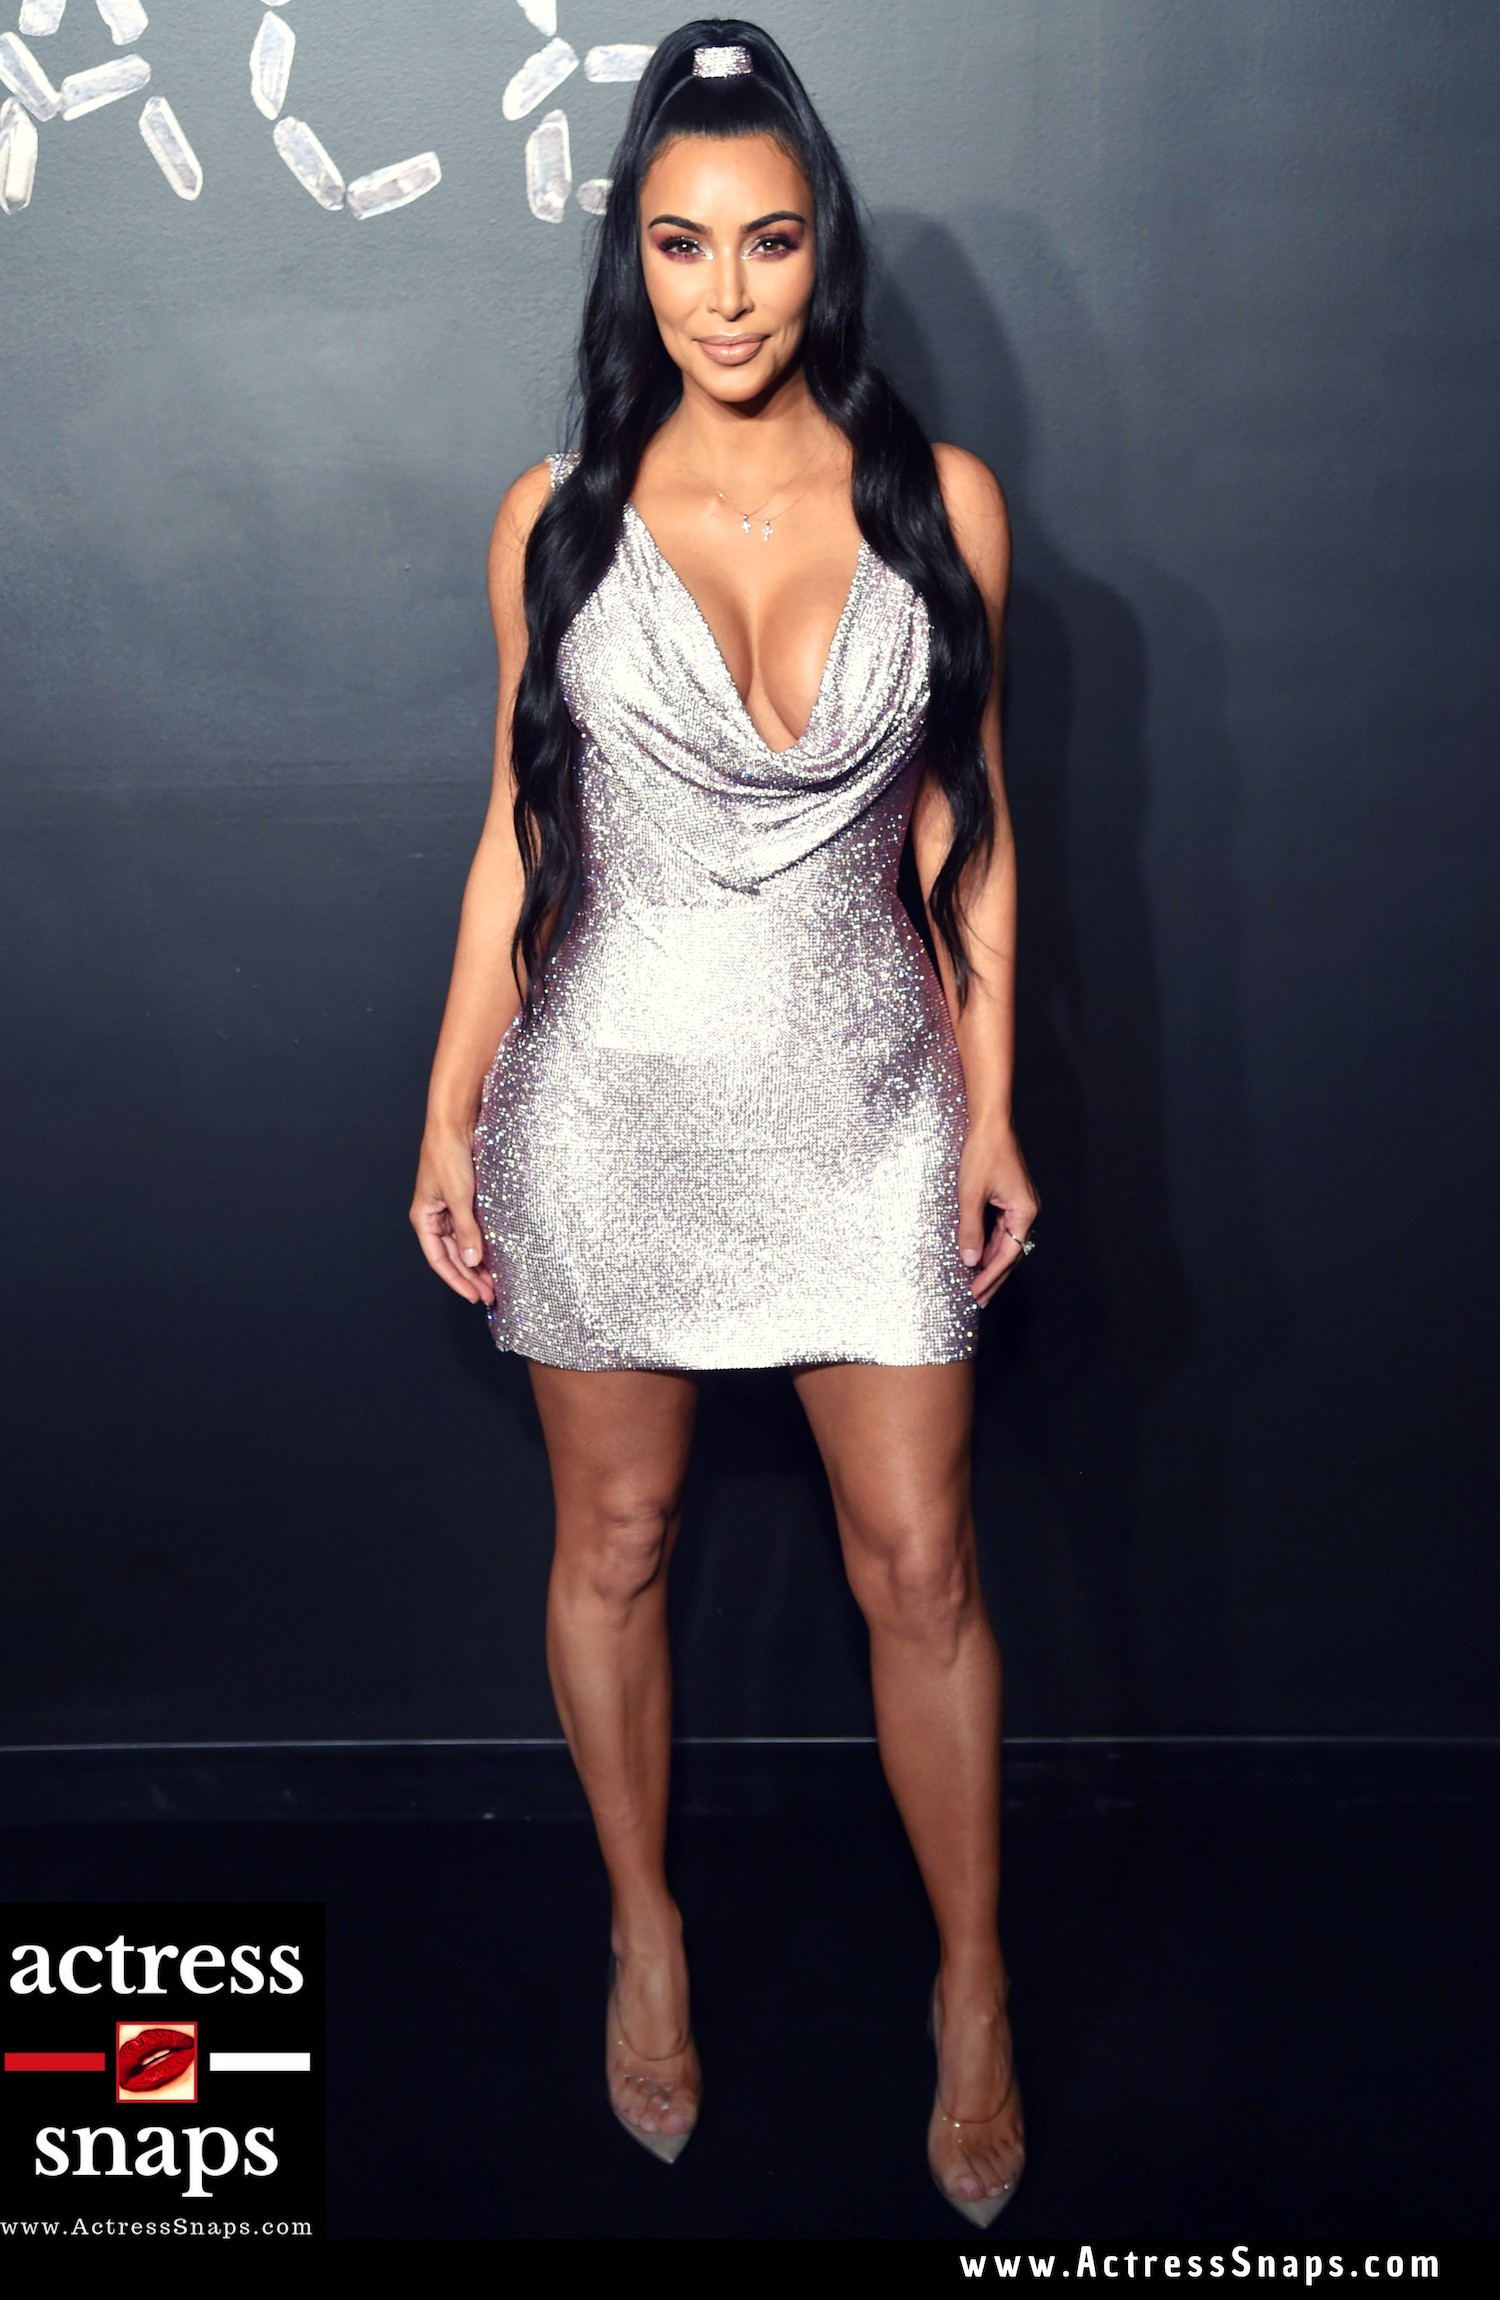 Kim Kardashian Sexy Cleavage Show - Sexy Actress Pictures | Hot Actress Pictures - ActressSnaps.com